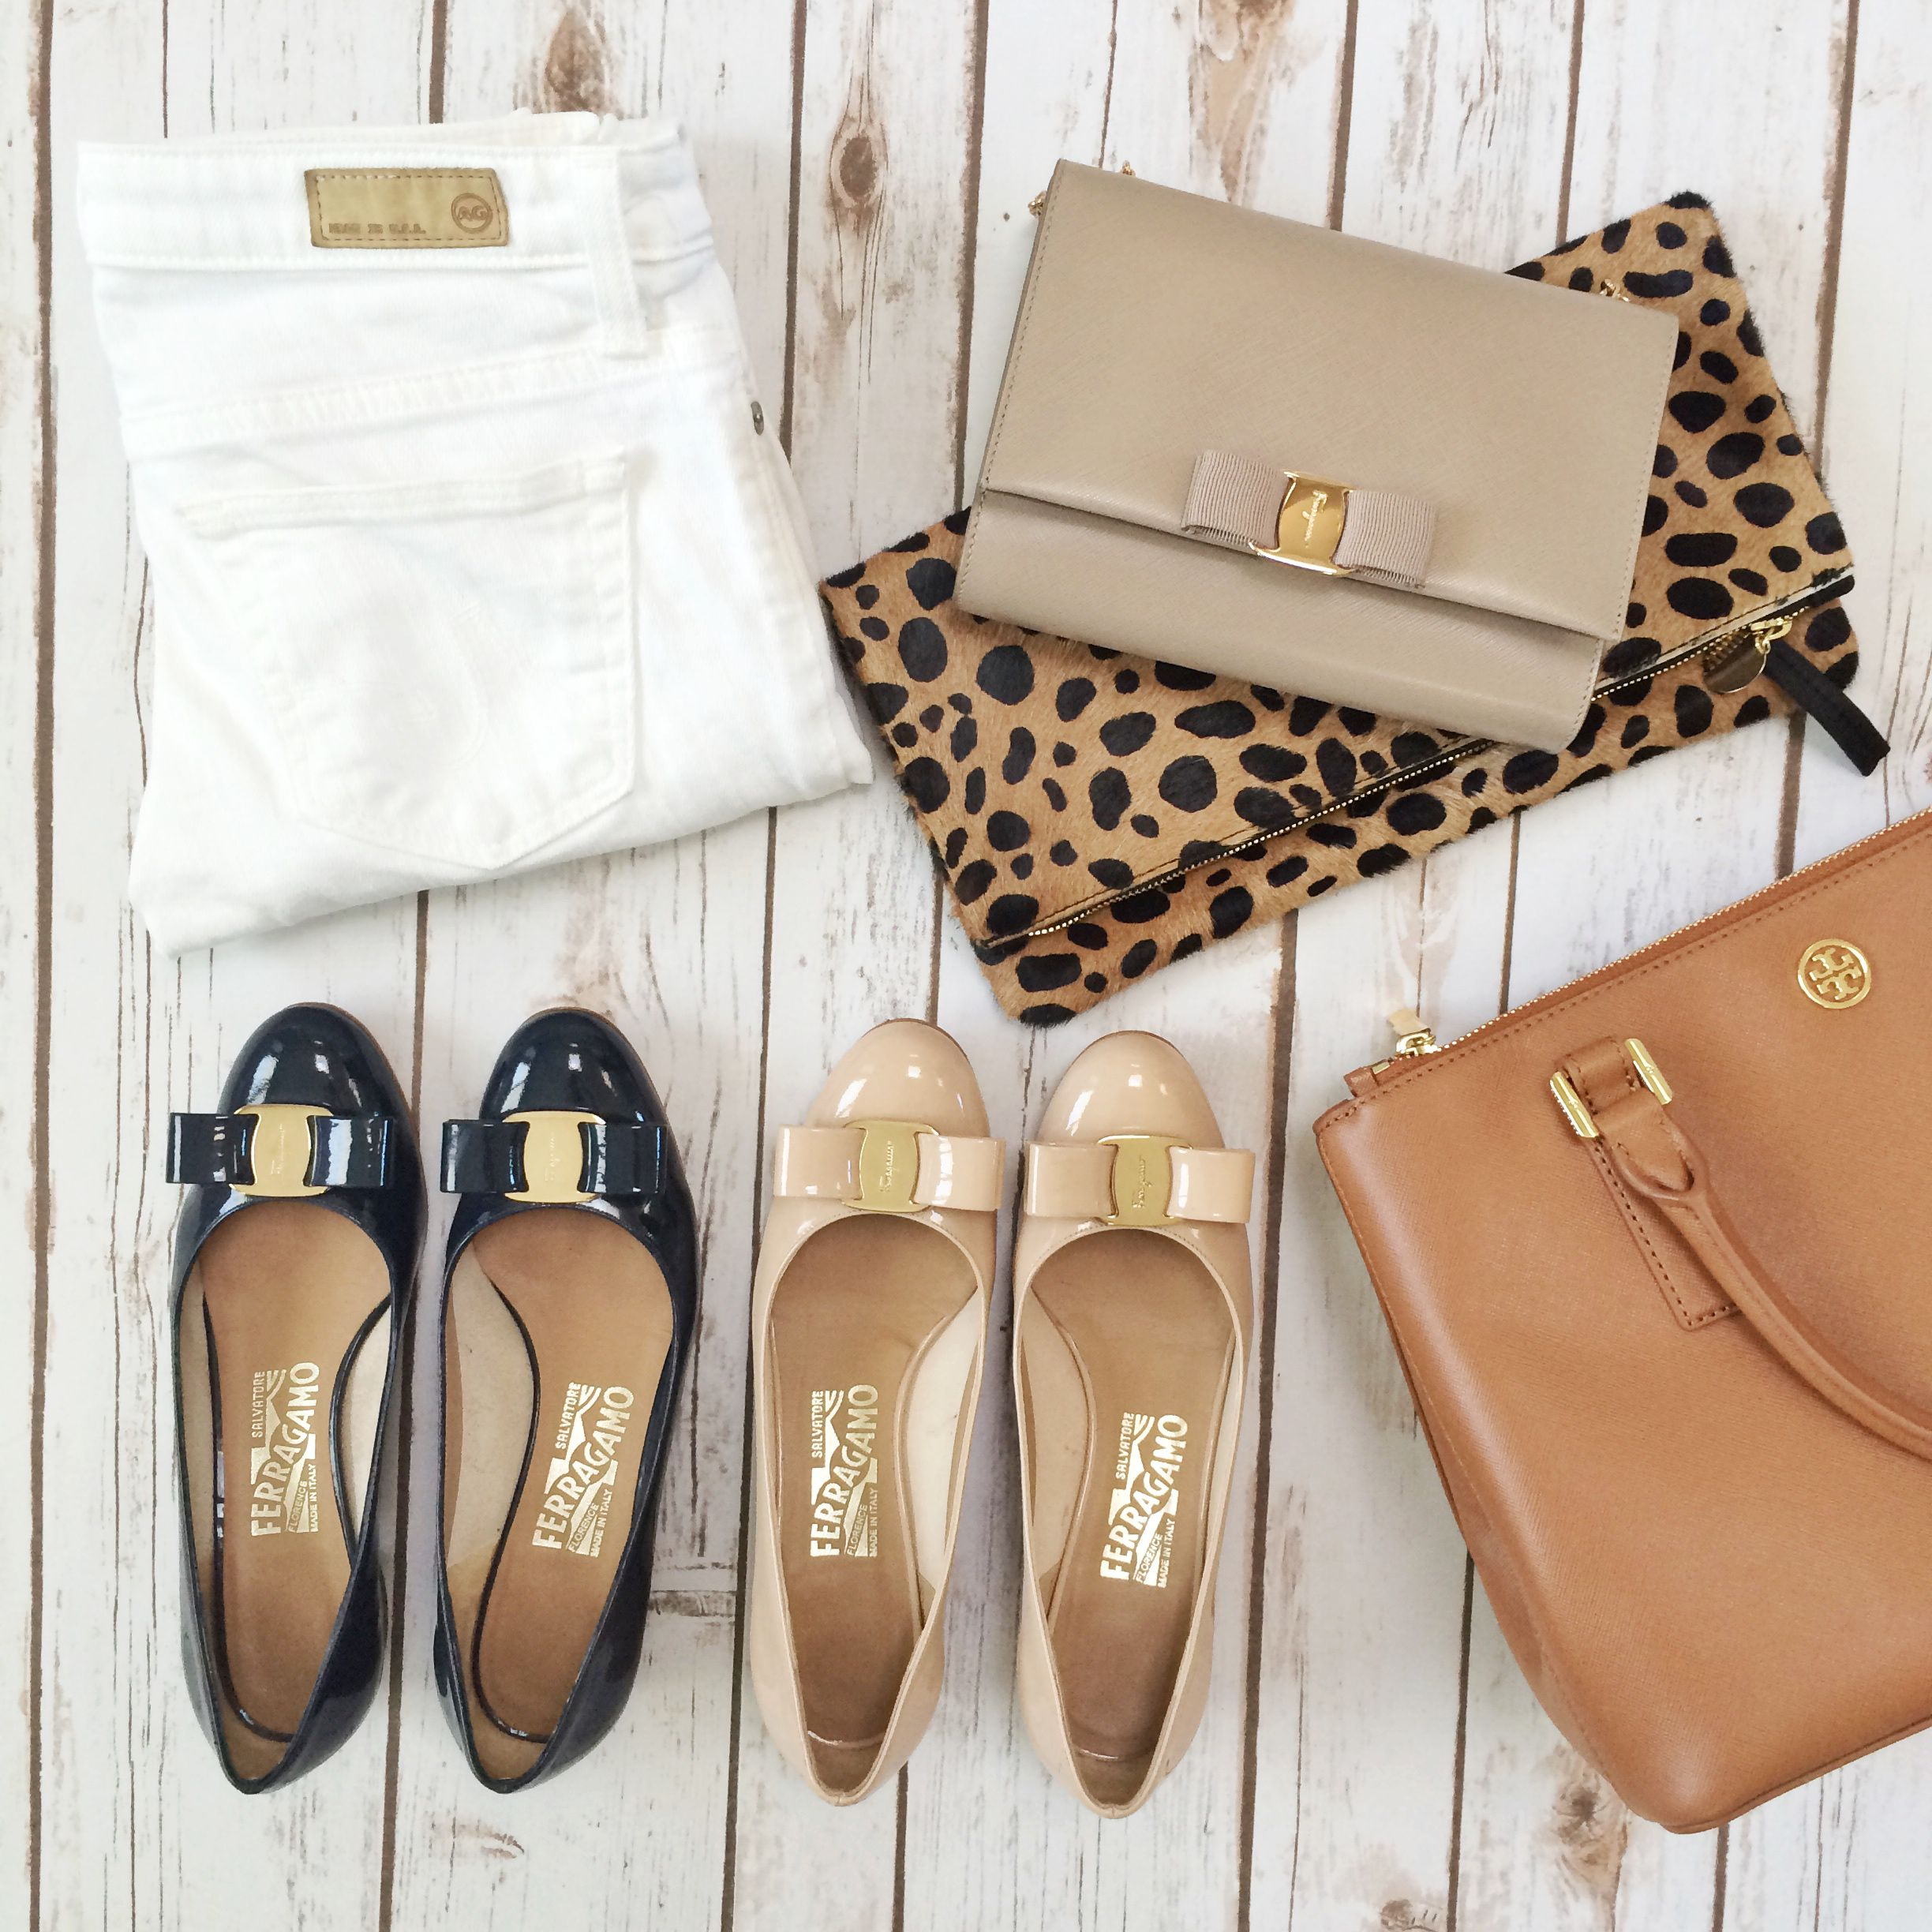 Ferragamo Vara bow pumps, Ferragamo miss vara cross body, AG cigarette stilt roll up white jeans, Tory Burch mini Robinson double zip tote, Clare V leopard foldover leaopard clutch ALL ON SALE! // http://www.stylishpetite.com/2015/03/sale-alert-shopbop-big-event-sale.html